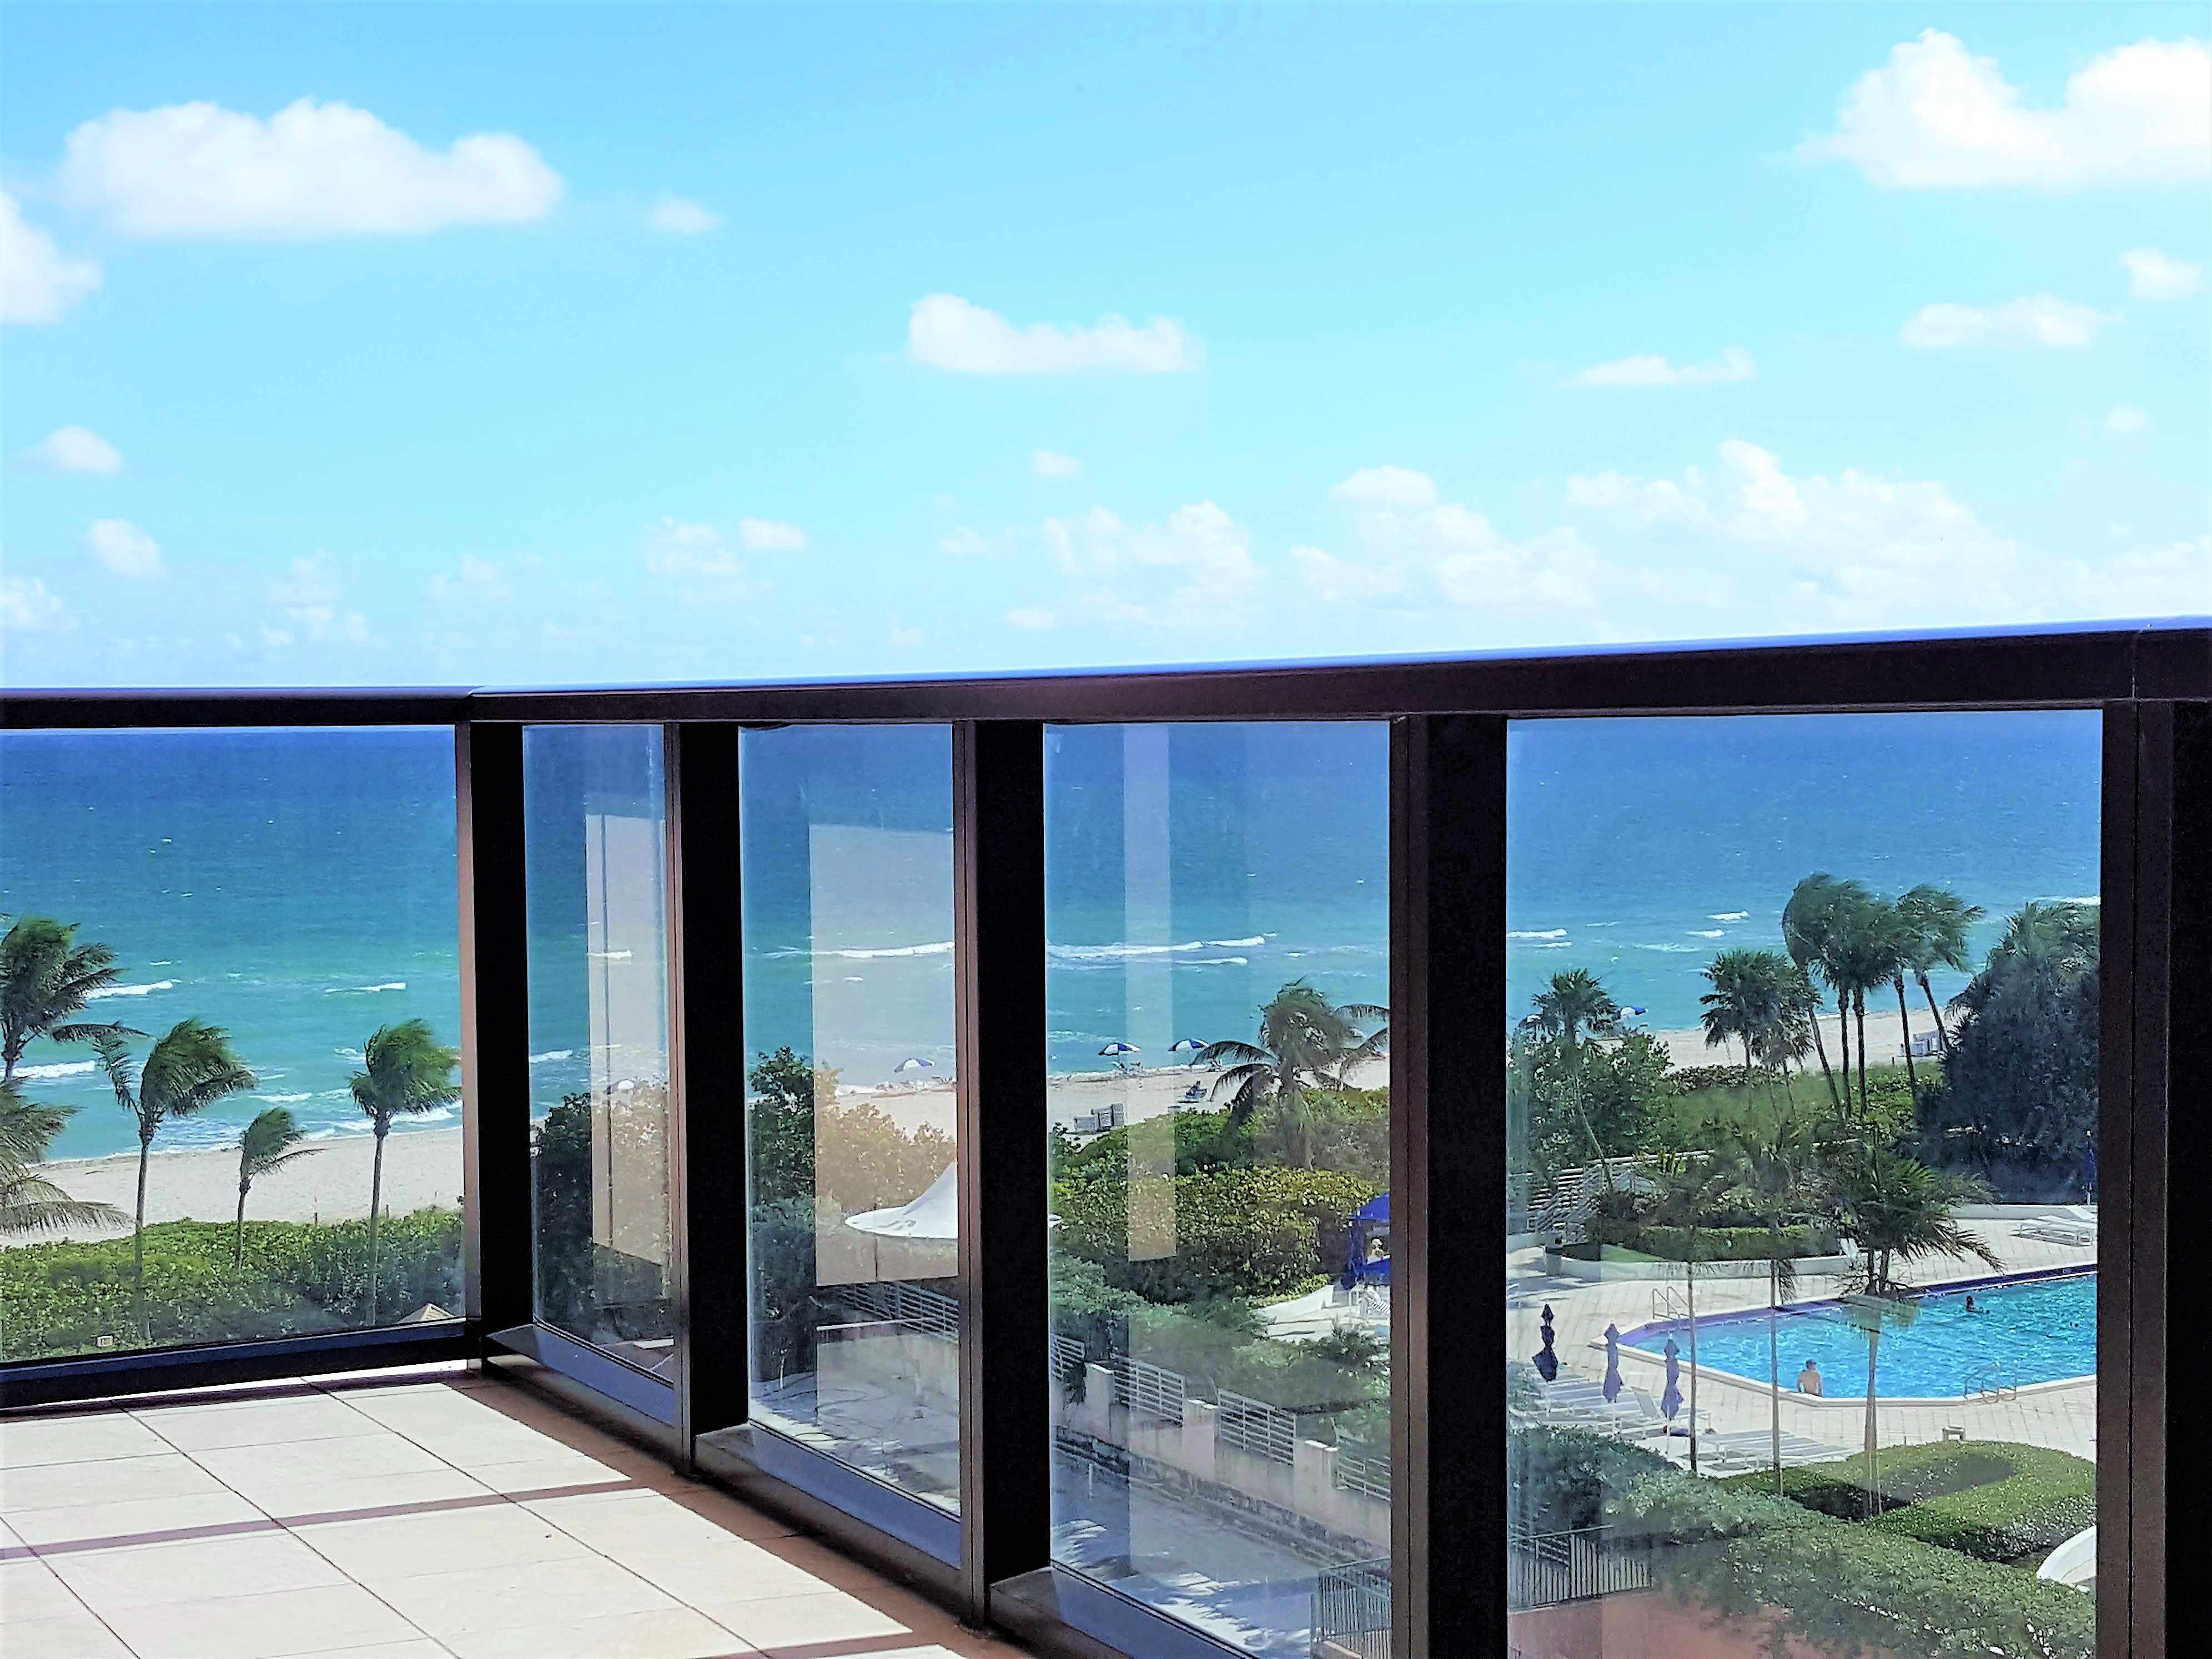 Oceanviews from balcony of this Airnbnb Miami Beach resort